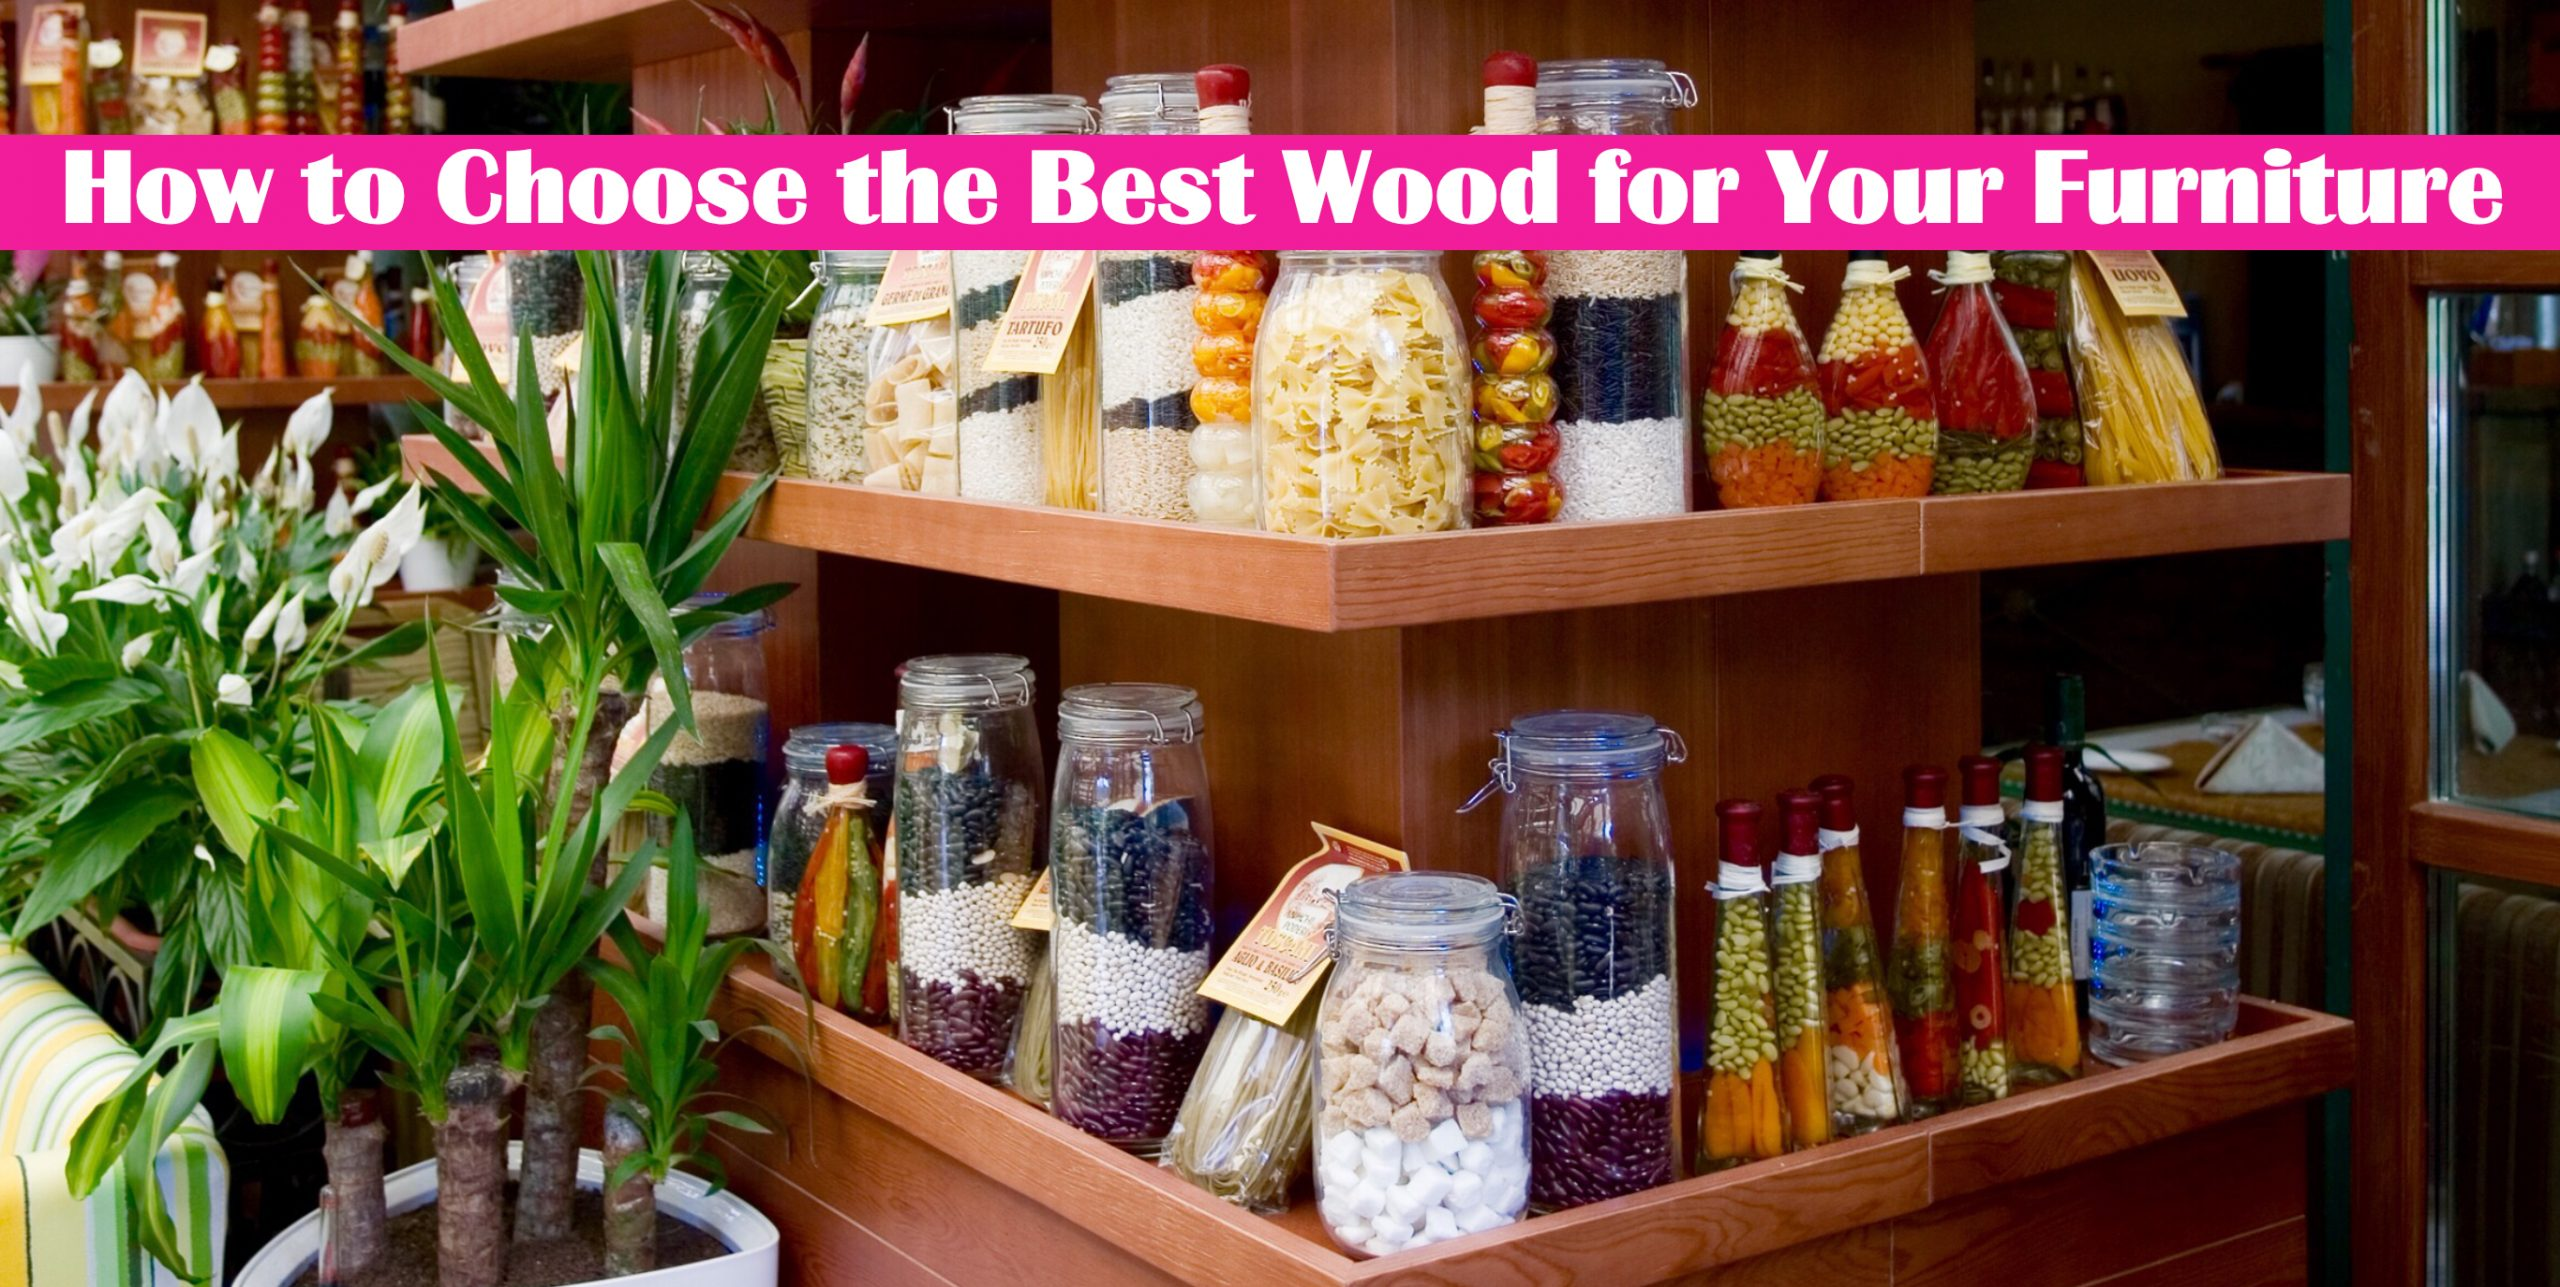 How to Choose the Best Wood for Your Furniture